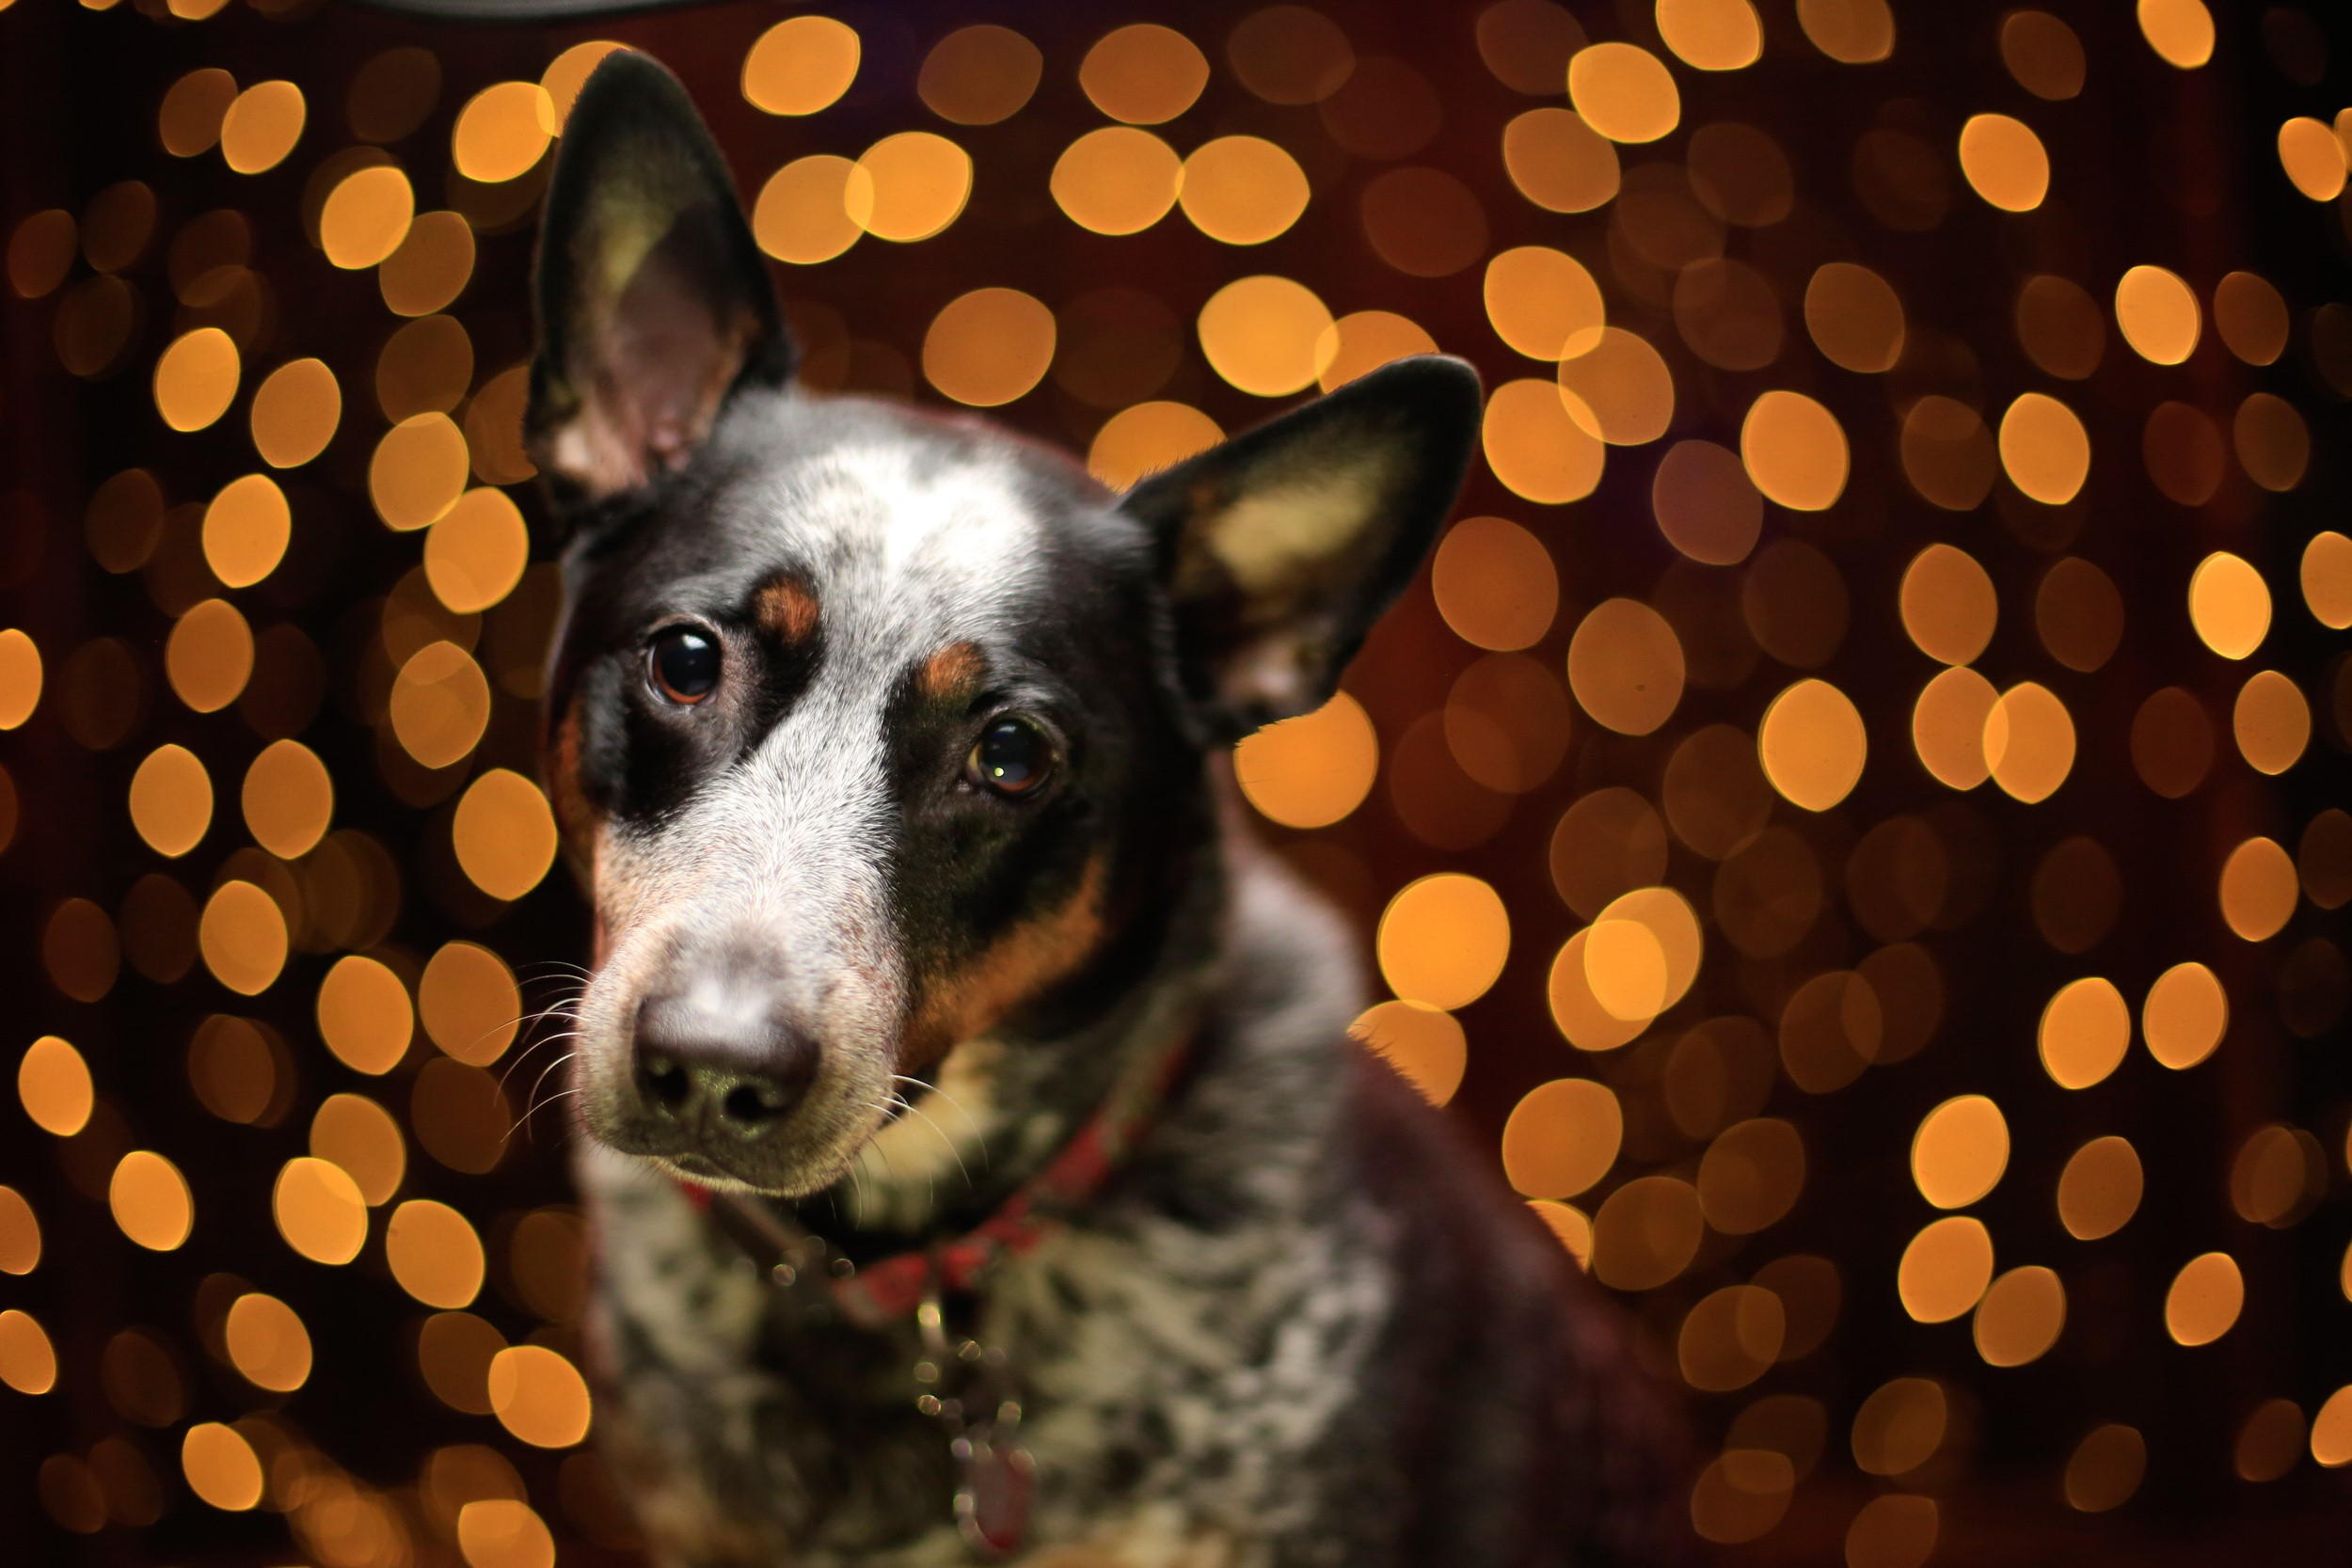 Christmas Pet Portrait Photography How-to in Real-Time!